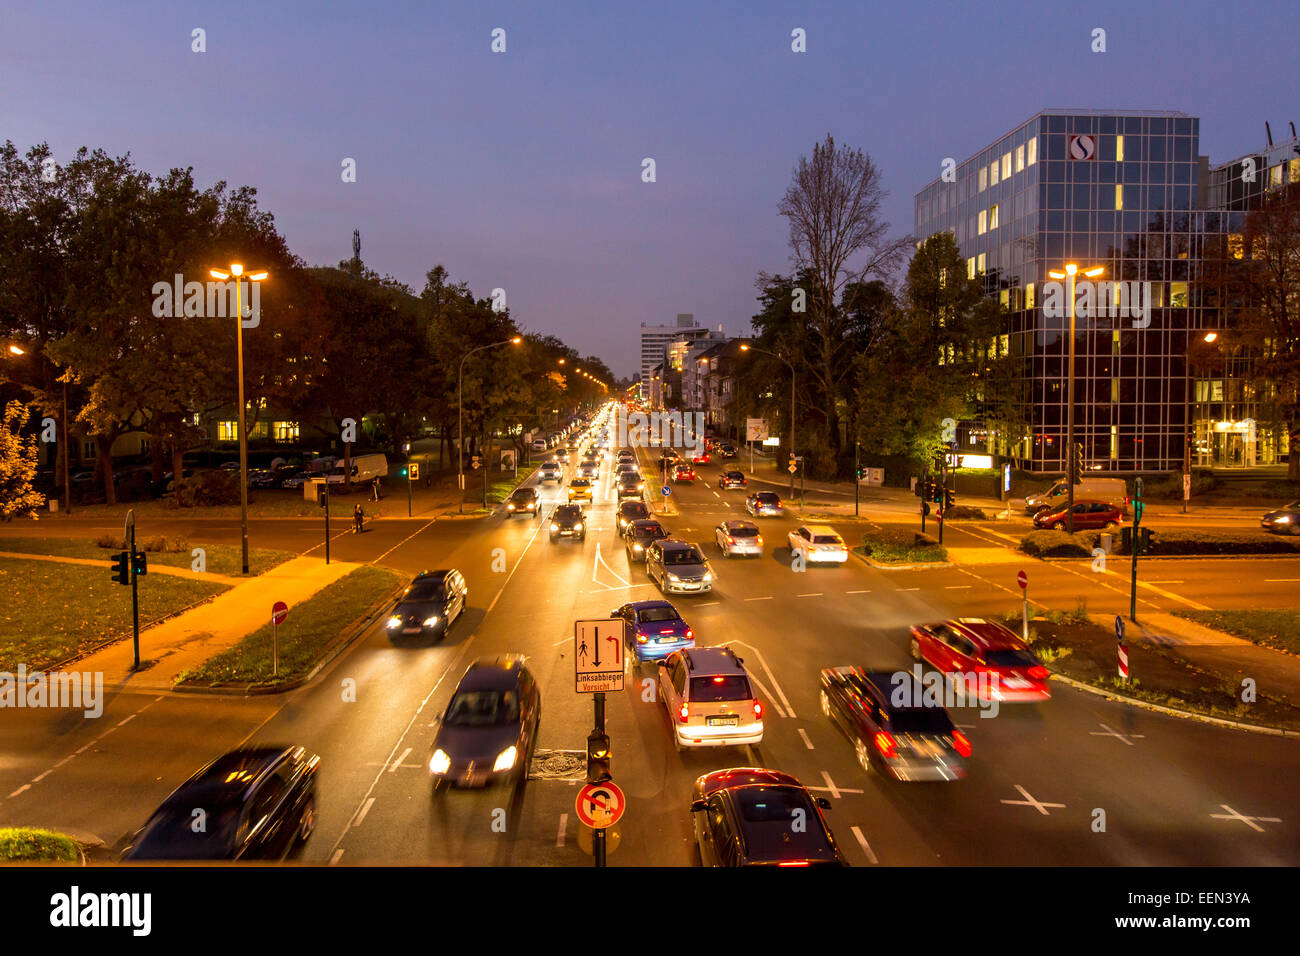 Rush hour in the evening, Alfred Street, Essen, Germany Stock Photo